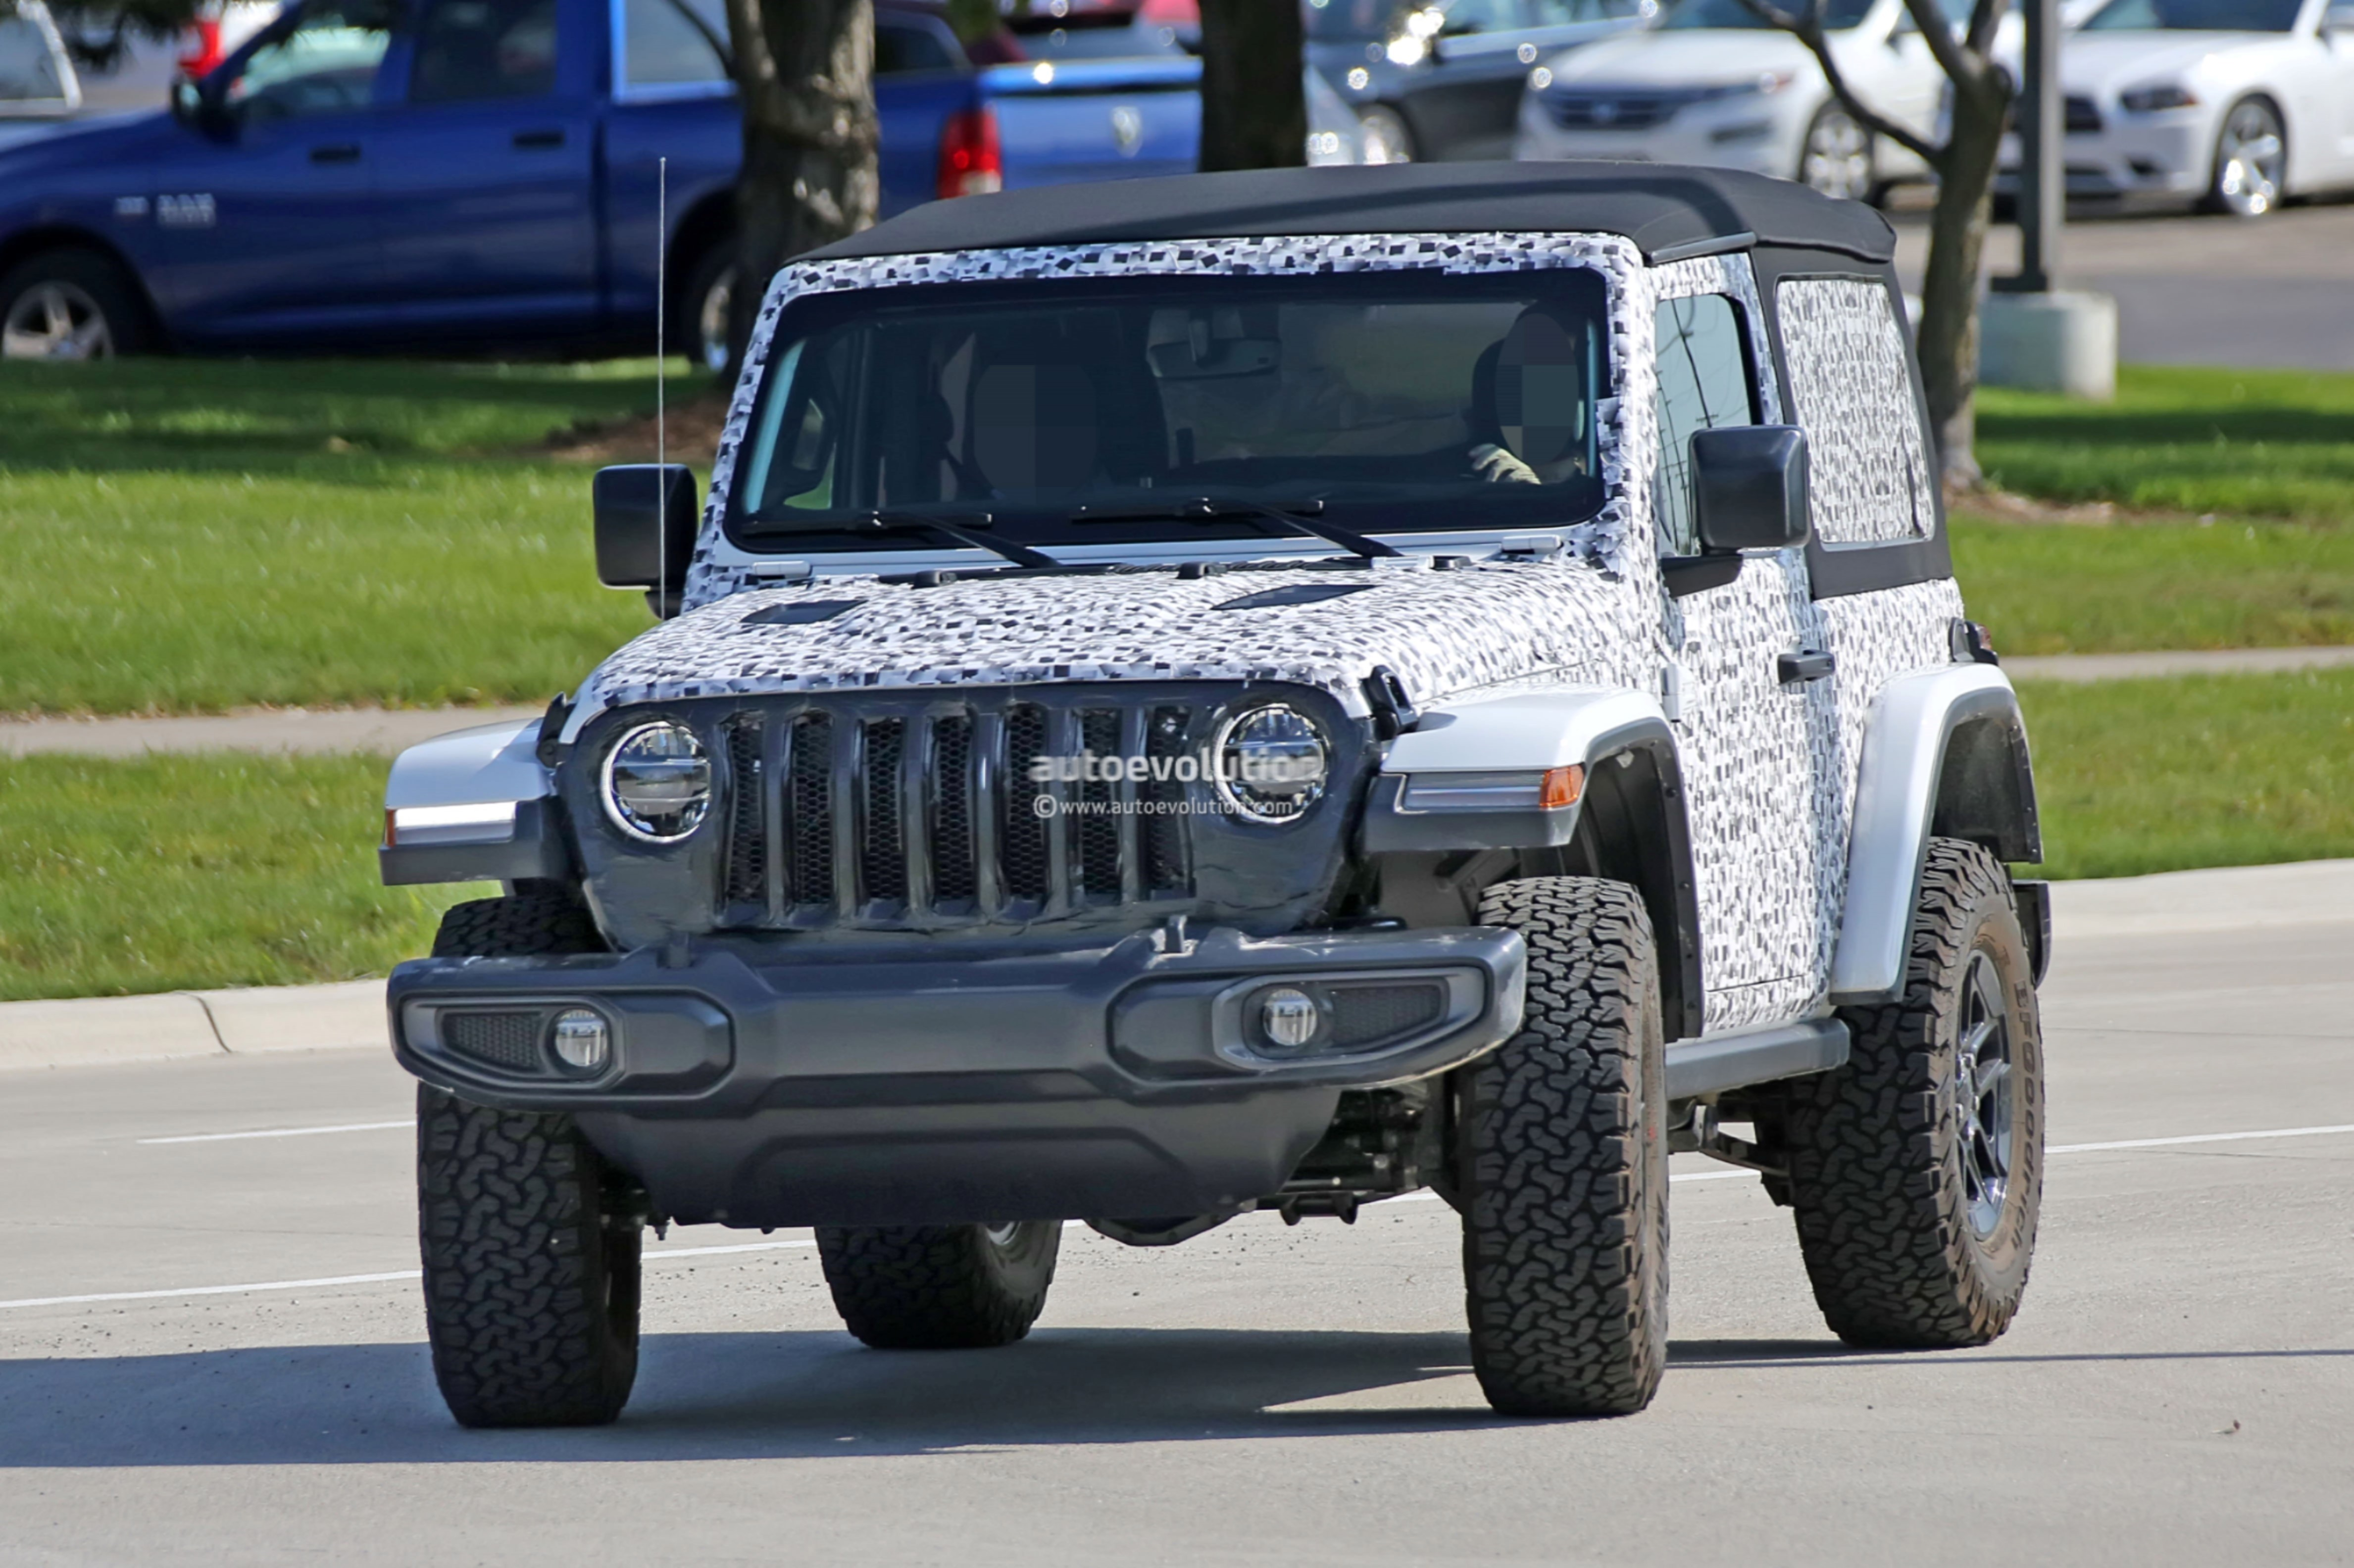 leaked: 2018 jeep wrangler 4-door (jlu) order guide is no longer a